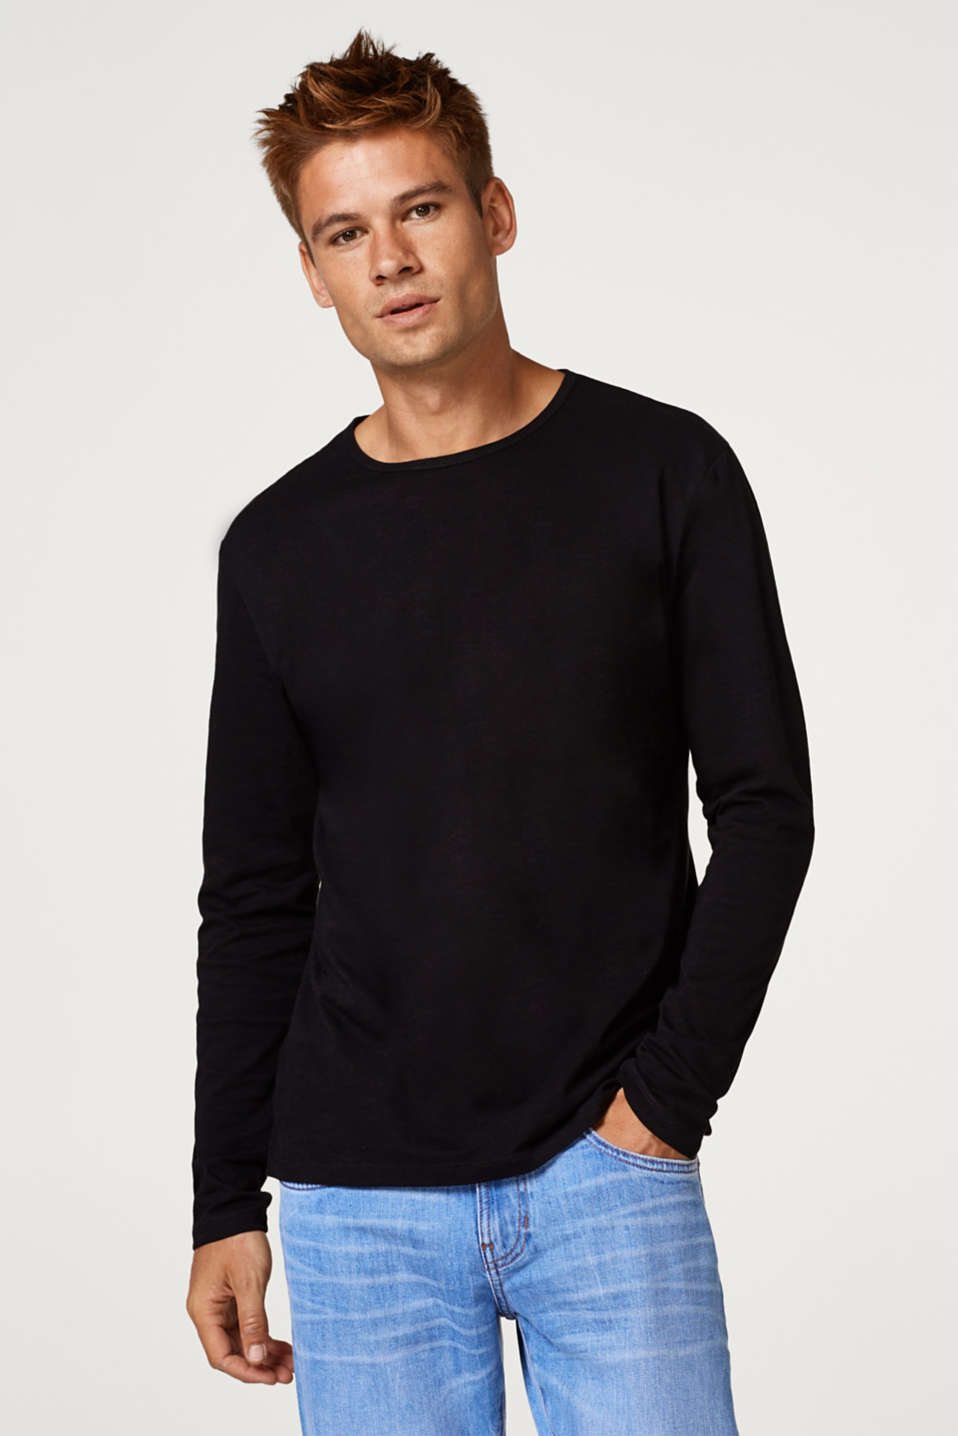 edc - Slub jersey long sleeve top, 100% cotton